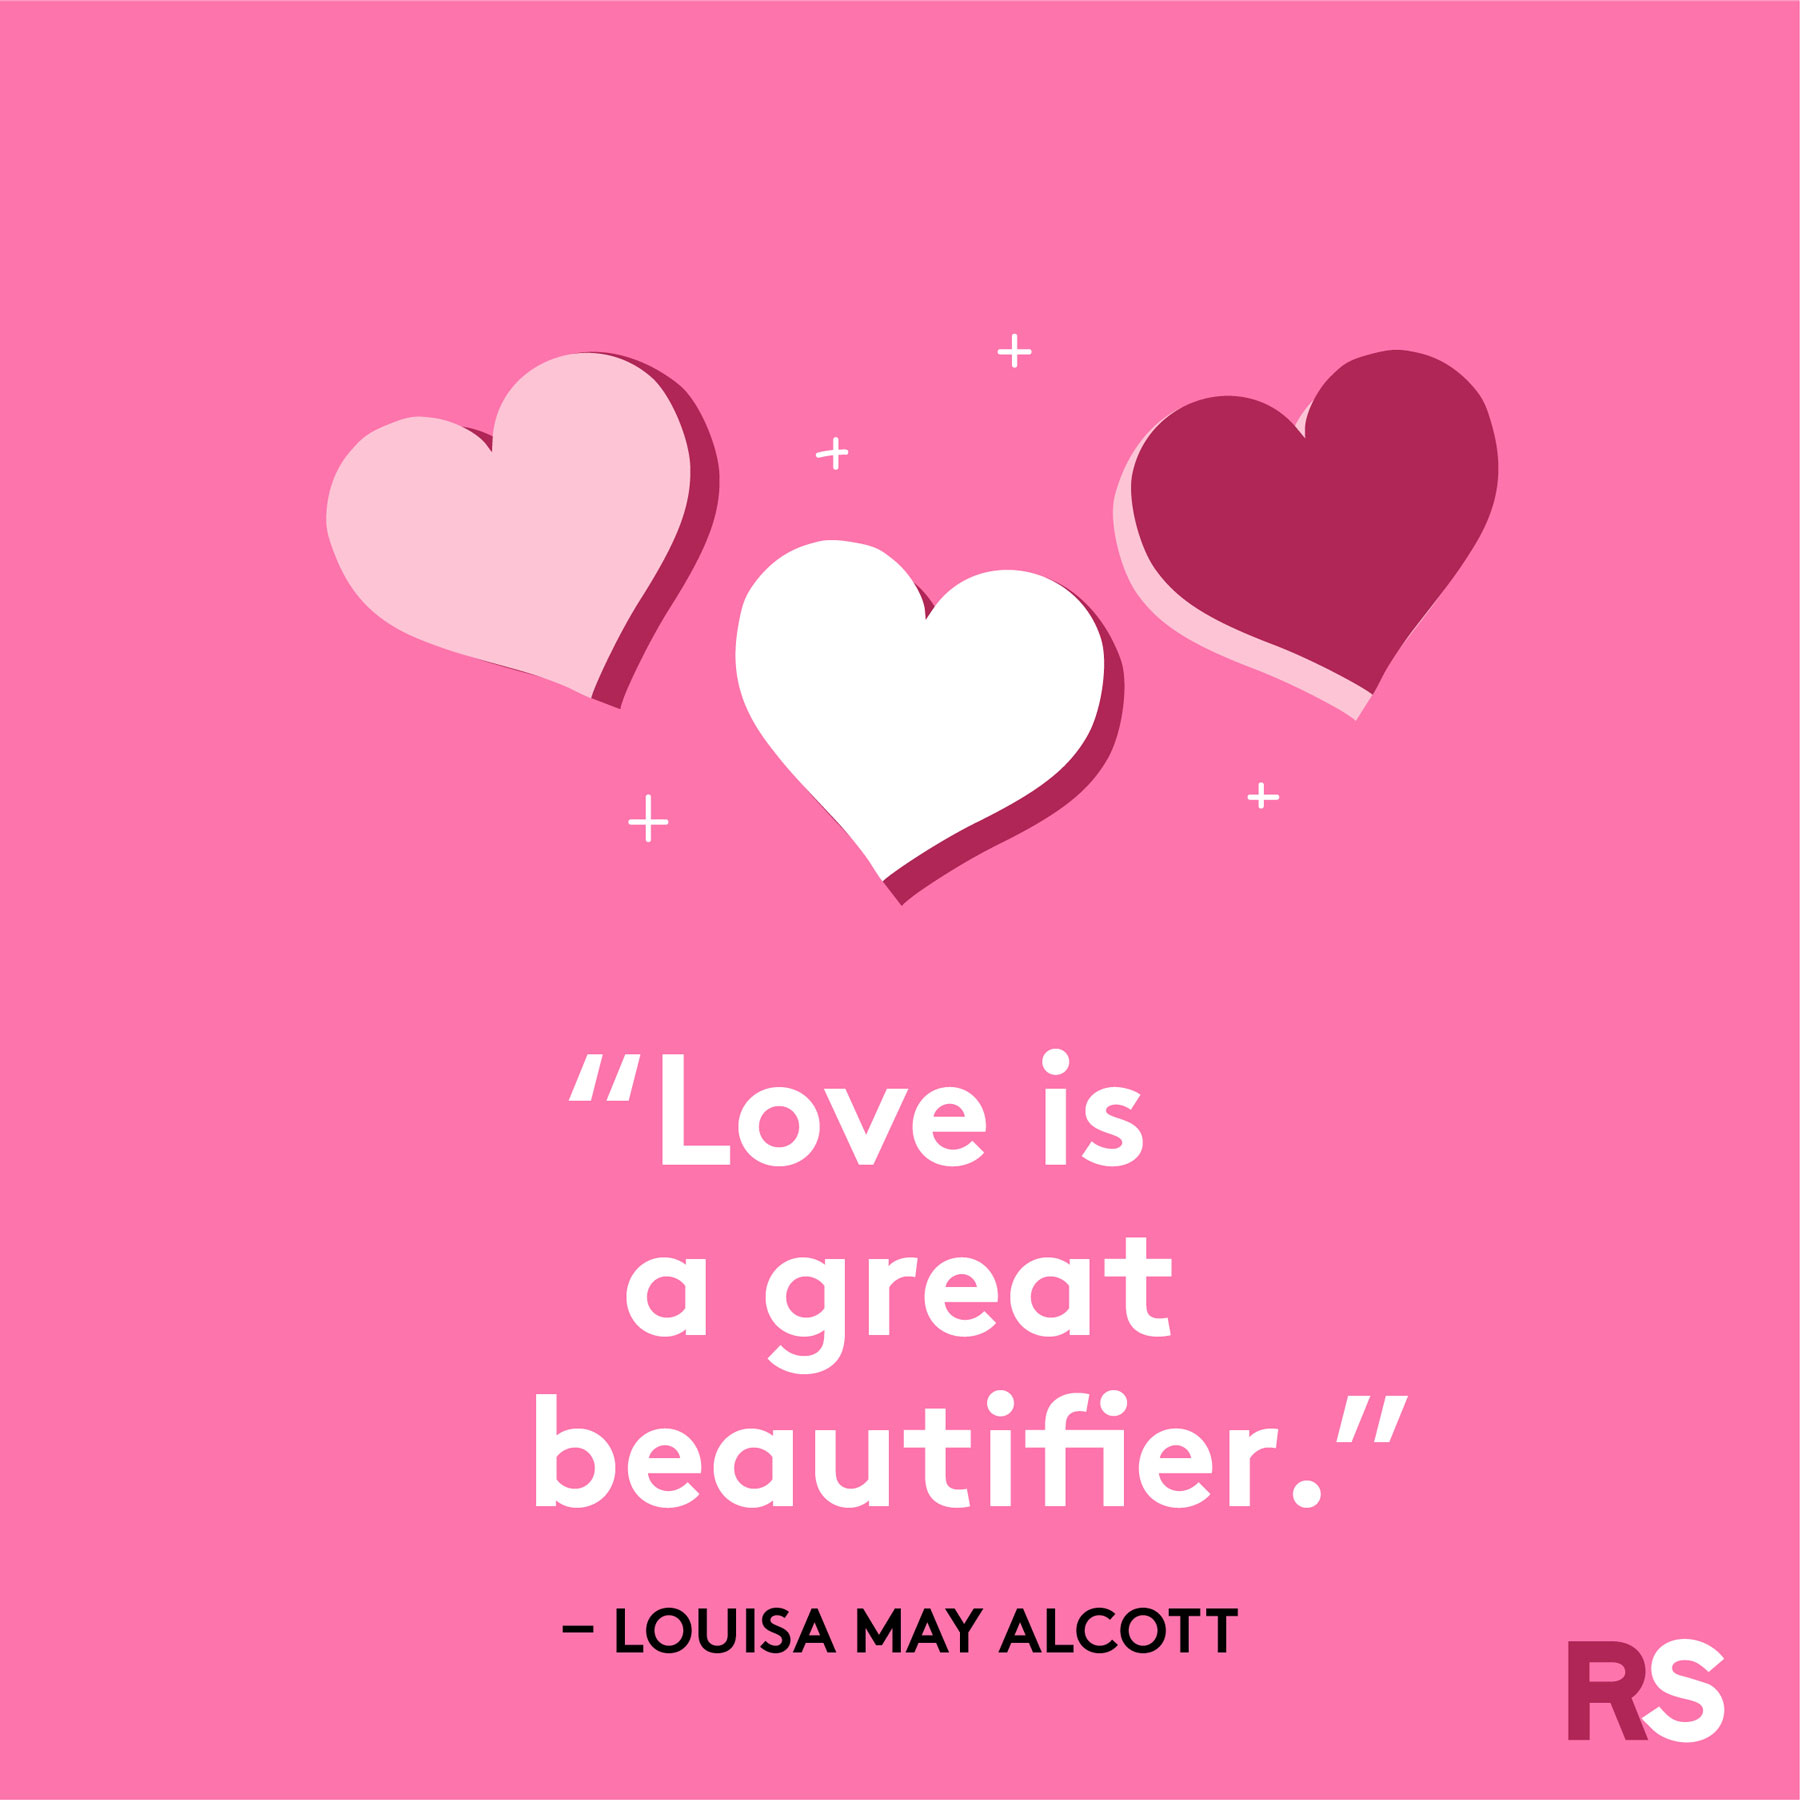 Love quotes, quotes about love - Louisa May Alcott